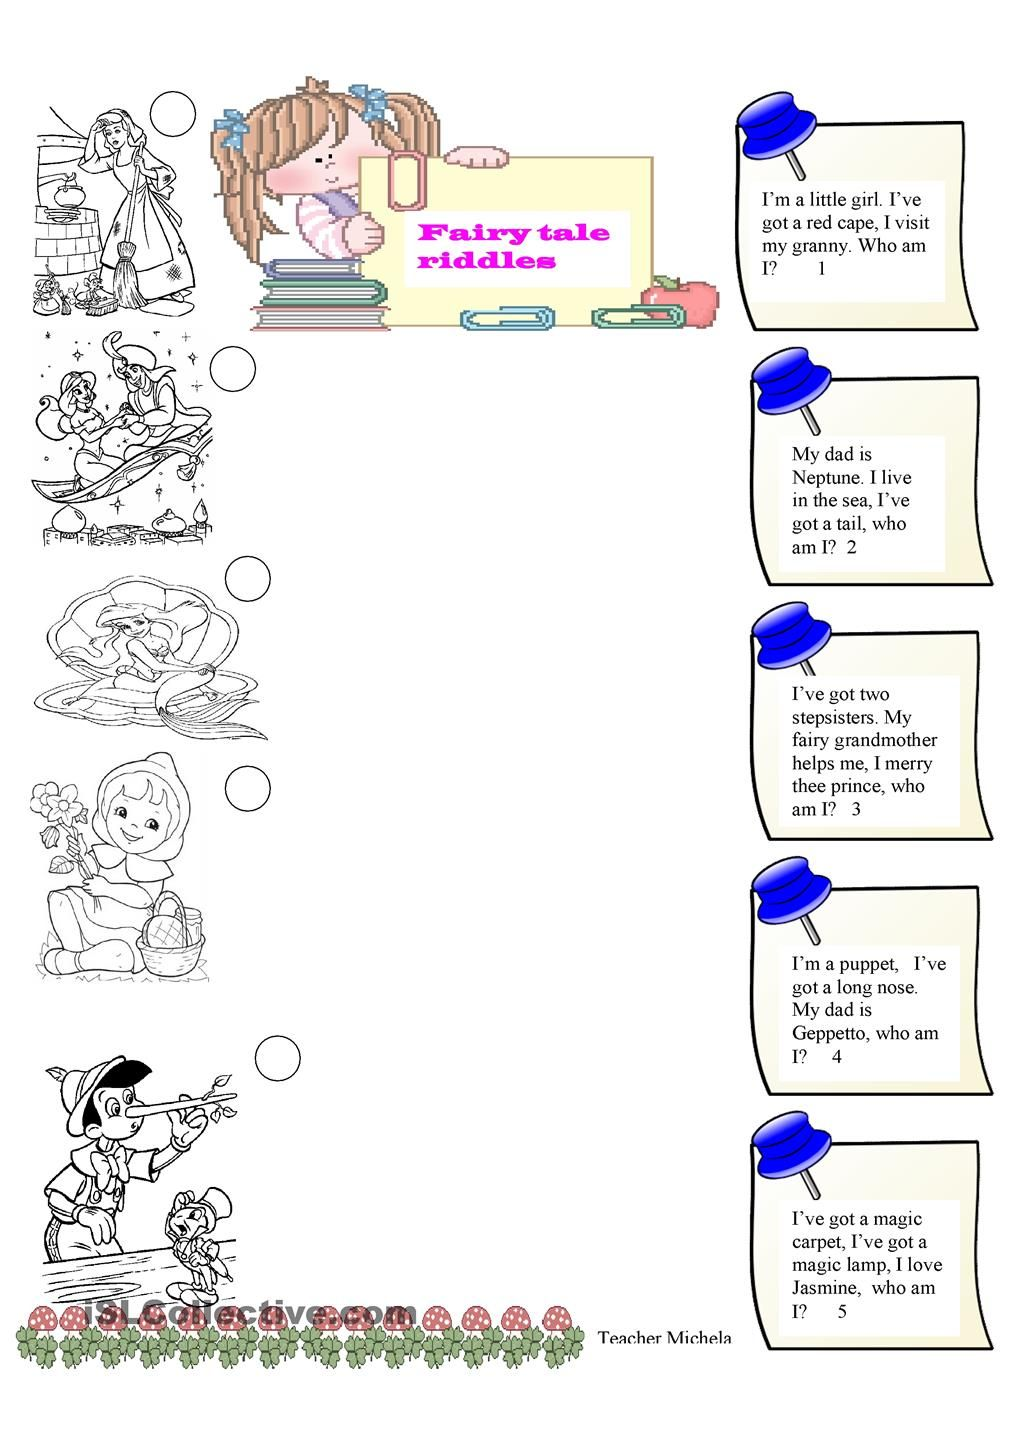 Pin By Vane On Fairytales Fairy Tales Riddles Traditional Tales [ 1440 x 1018 Pixel ]